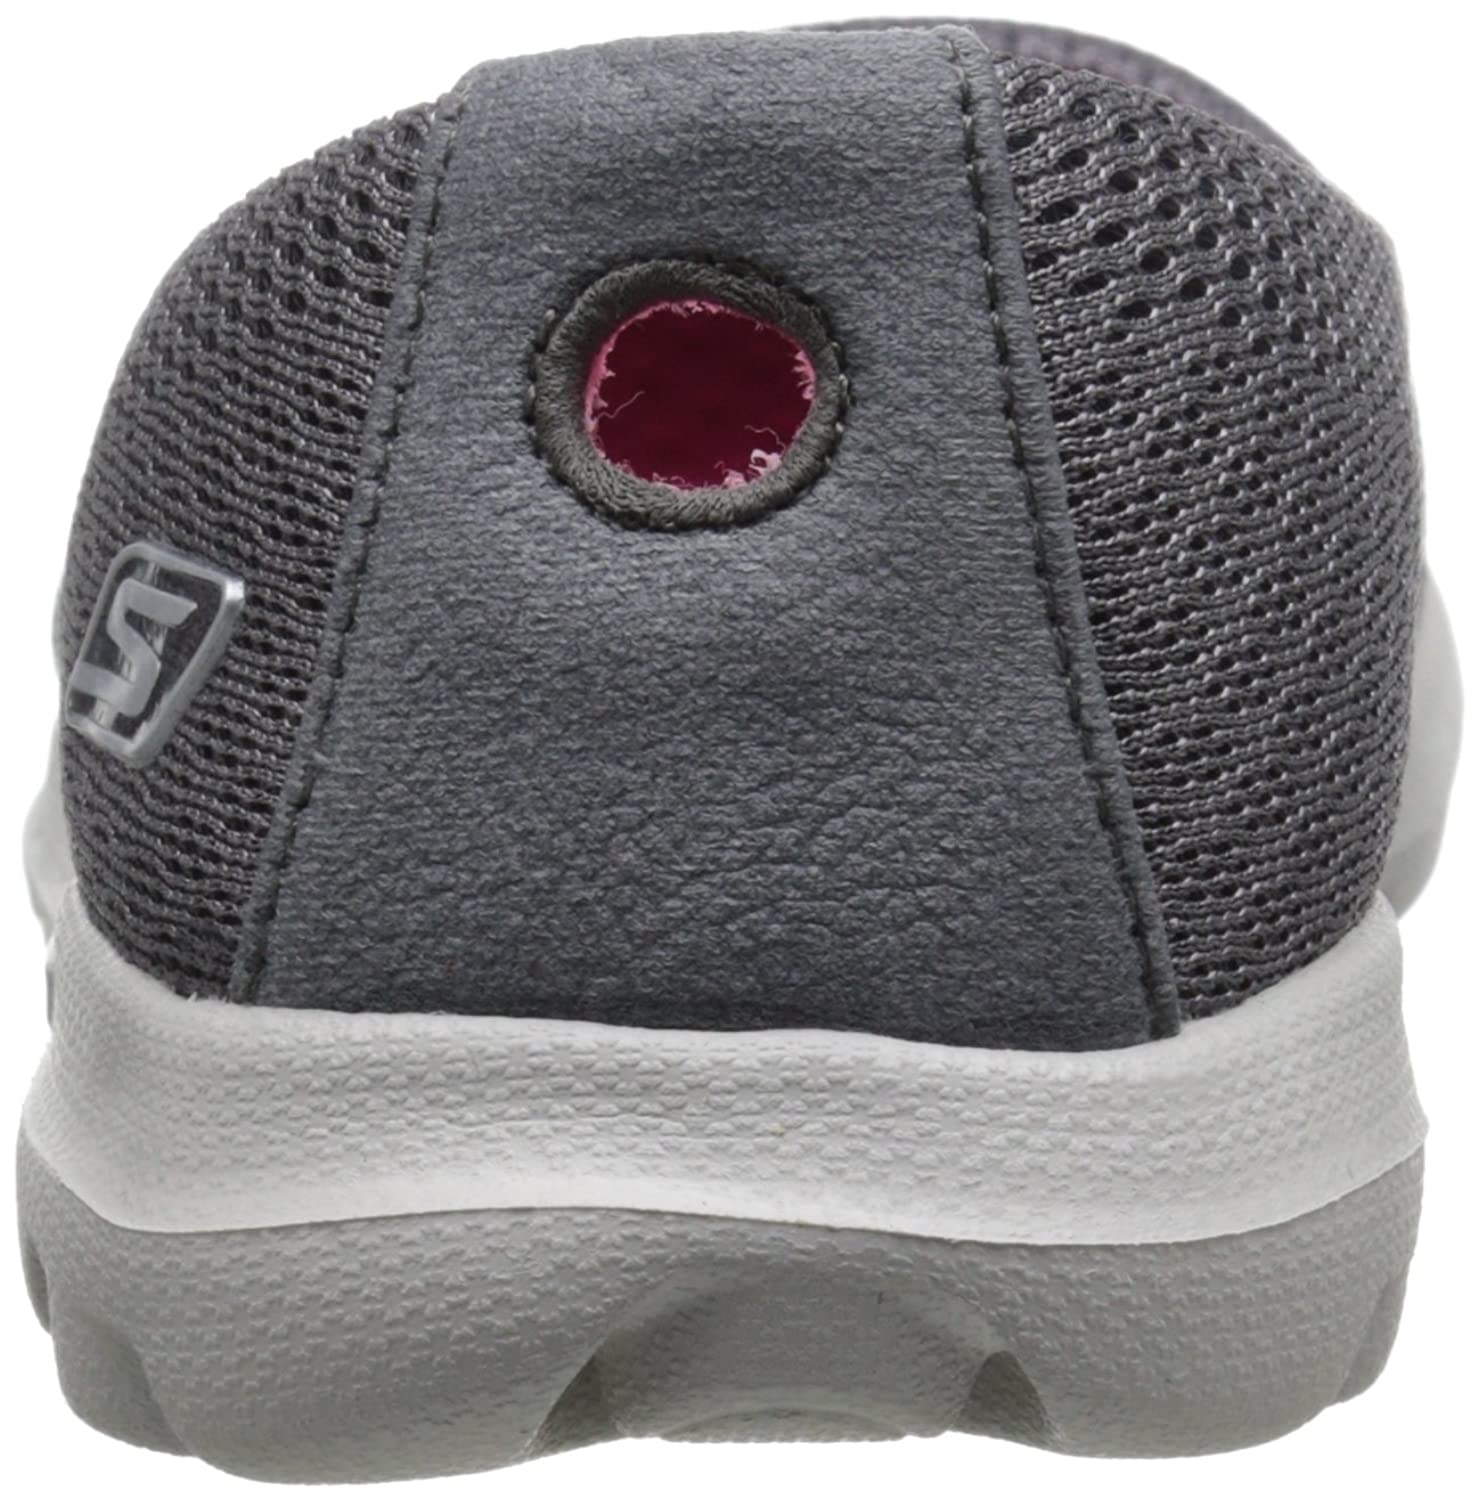 Skechers Sko For Kvinner India IYqg2E4u